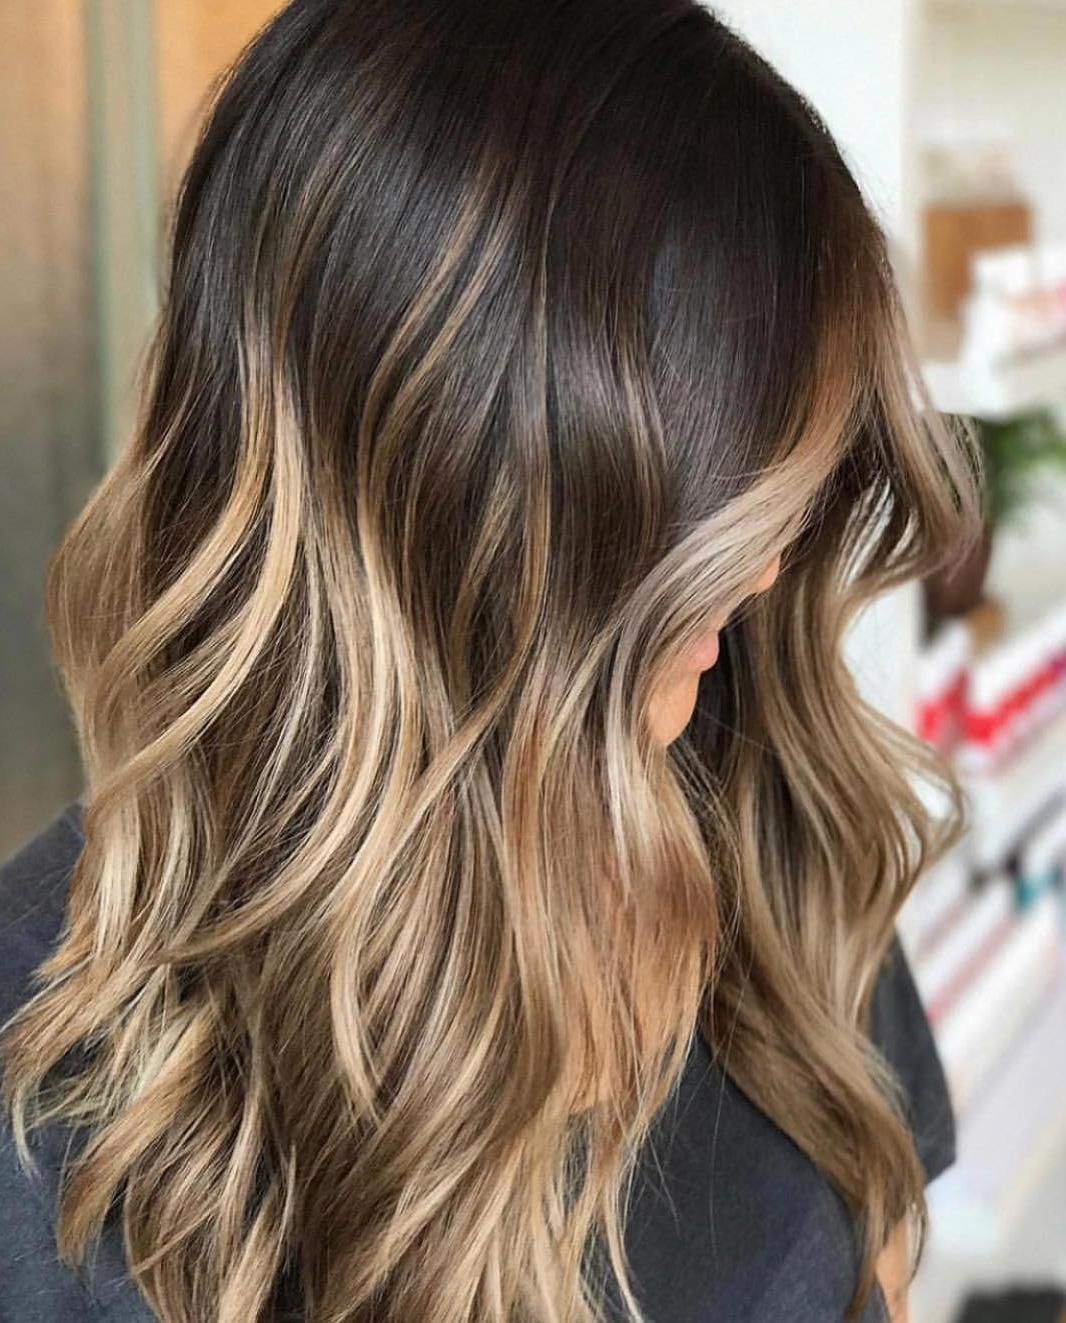 58 Inspiring Spring Hair Colors Ideas That Trending In 2020